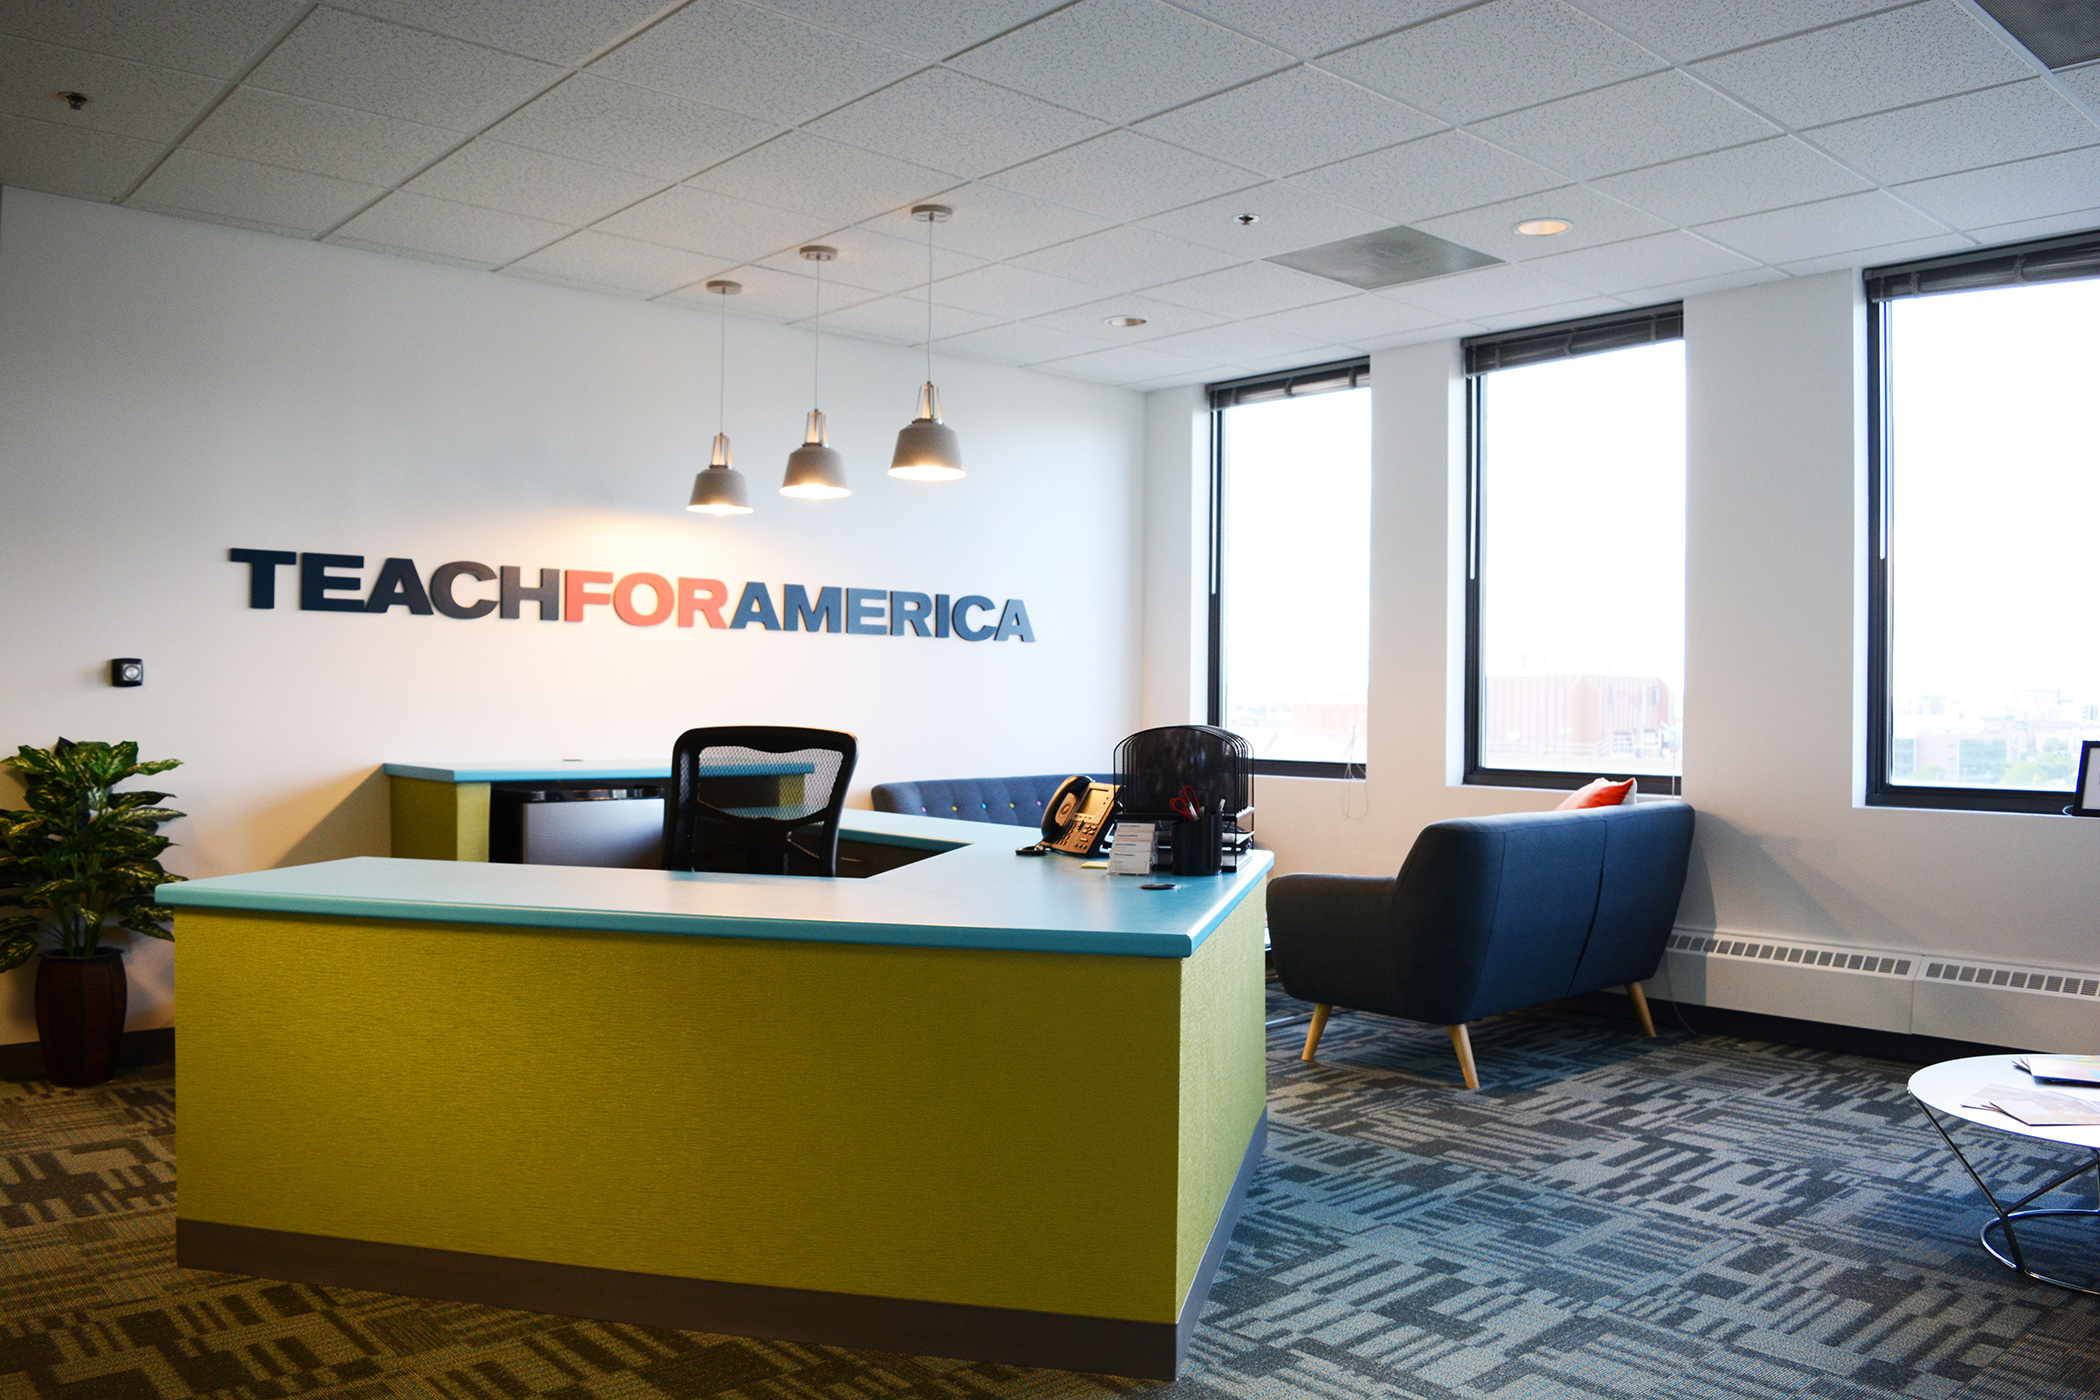 Teach for America wanted to have a casual and welcoming entry area that not only greeted guests with a cozy 'living room' feel, but could serve multiple purposes such as impromptu meetings and lounging. The diagonal placement of the desk allows for visitors to feel immediately welcomed even when a receptionist is not in sight.